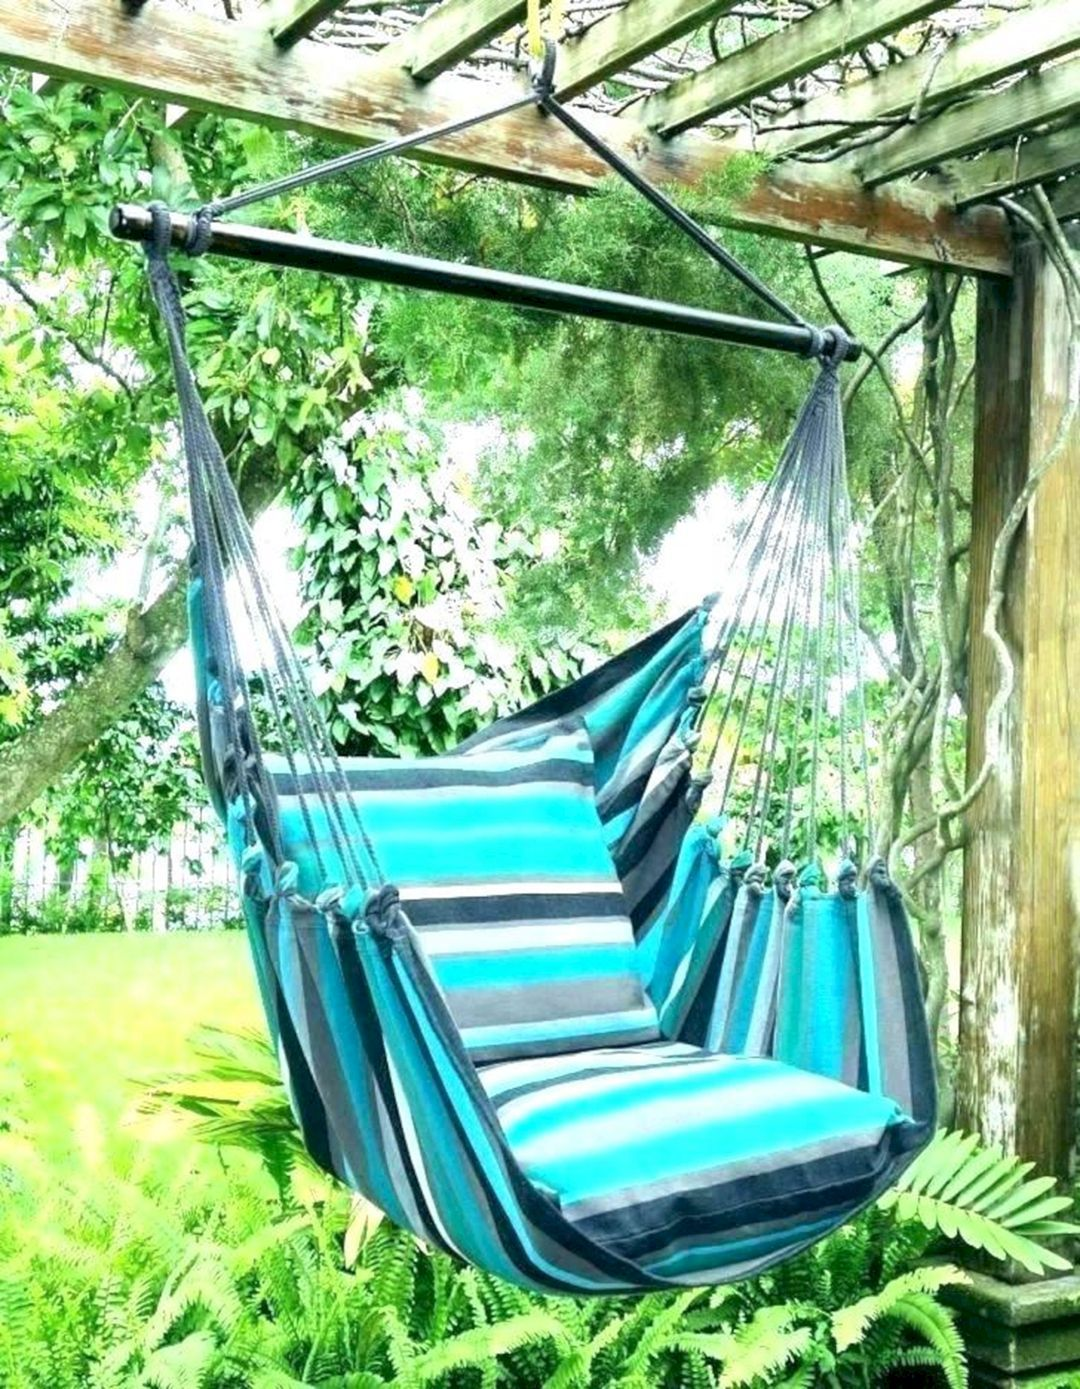 15 Unbelievable Outdoor Swing Hammock Ideas For A Place To Relaxation Hanging Hammock Chair Outdoor Hammock Swing Outdoor Hammock